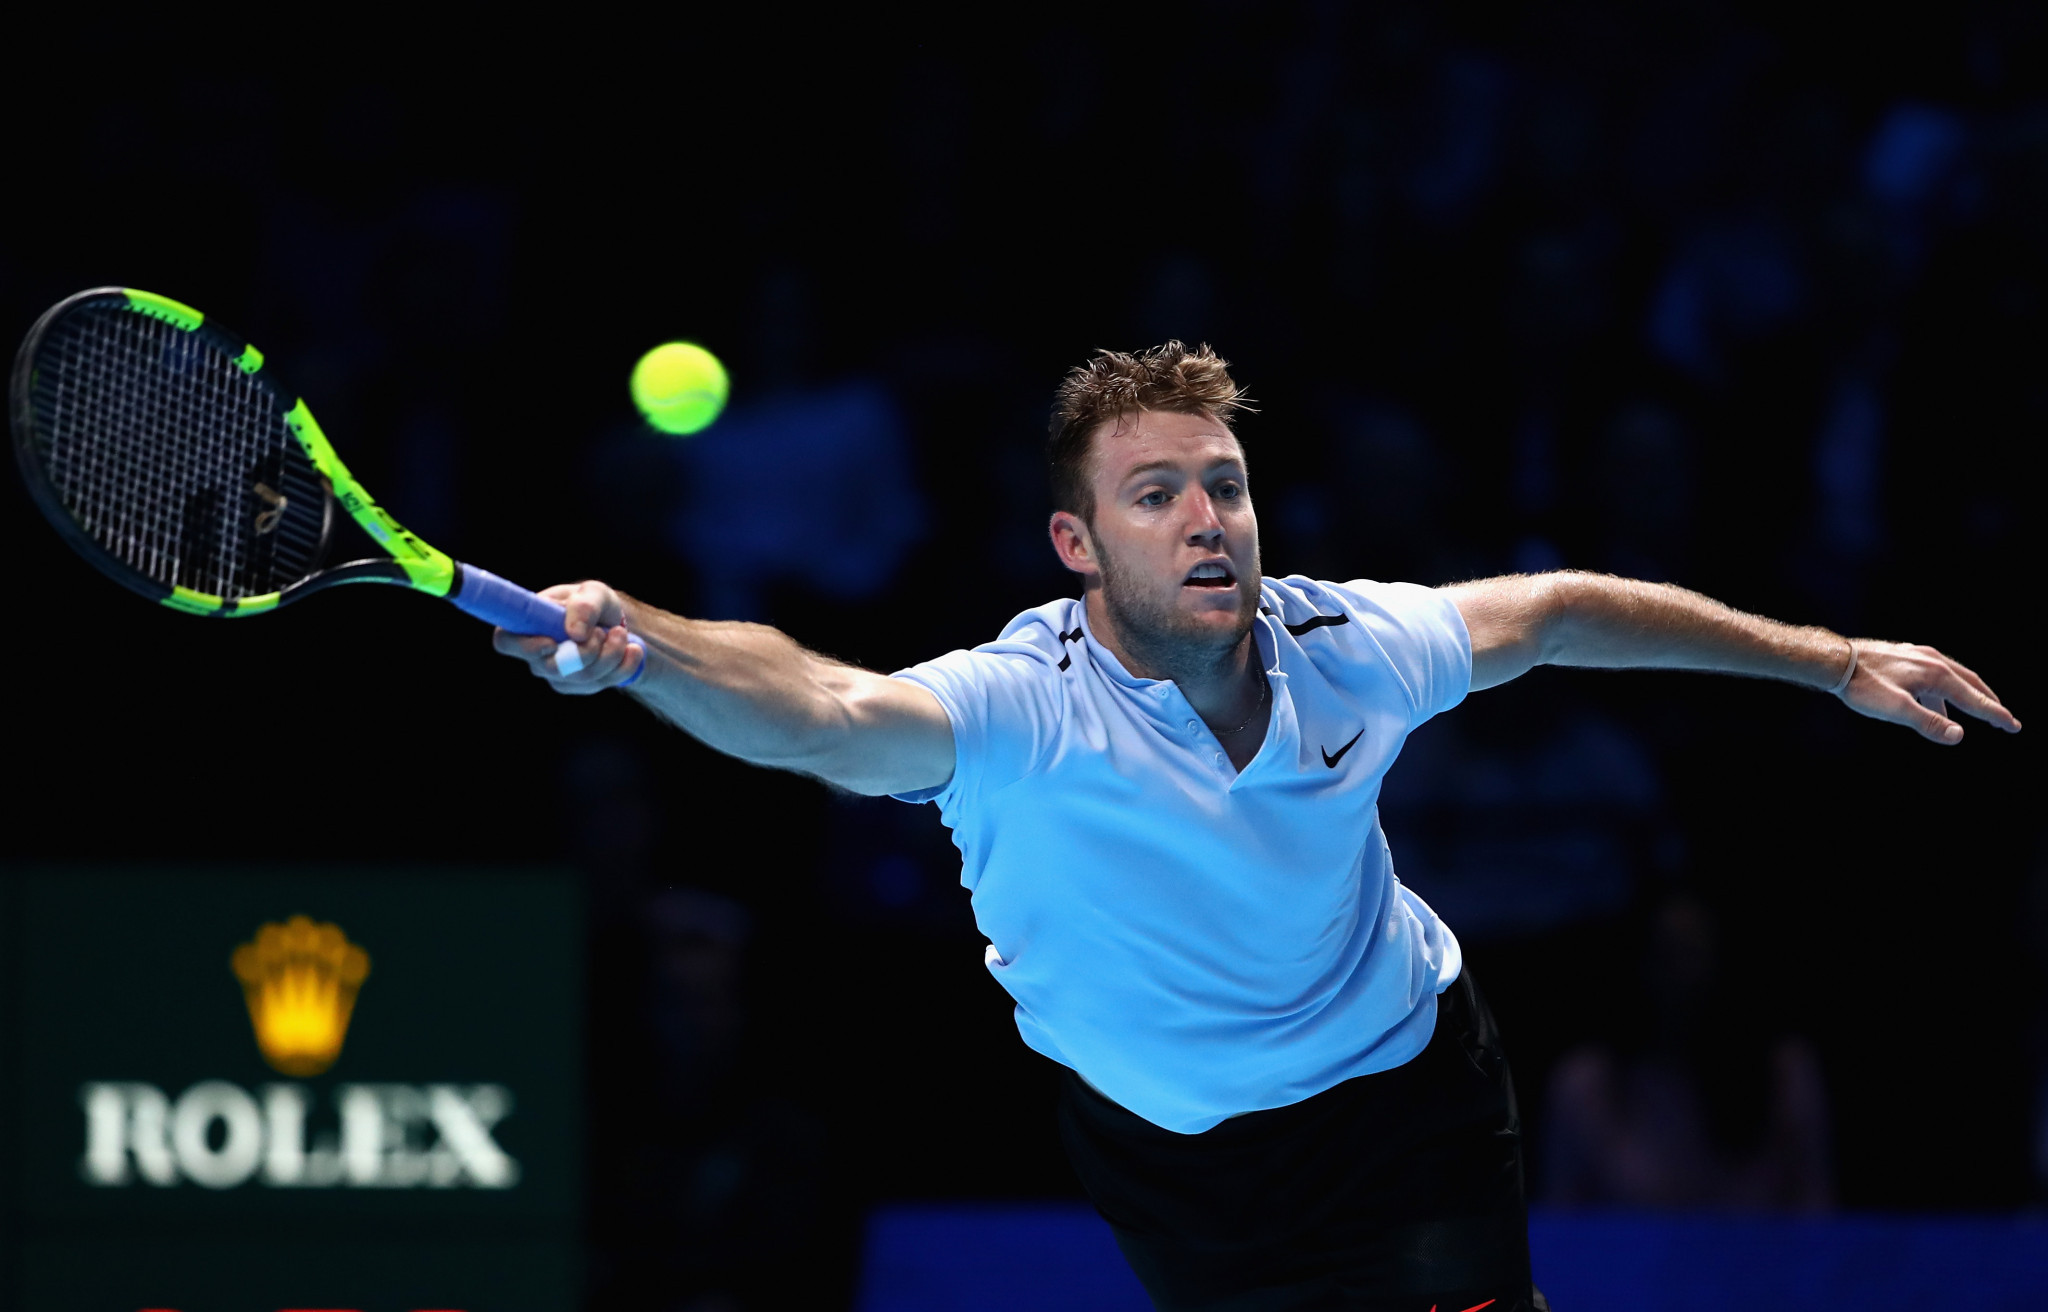 Jack Sock's next mission will be to defeat Germany's Alexander Zverev which will see him safely through to the last four in London ©Getty Images